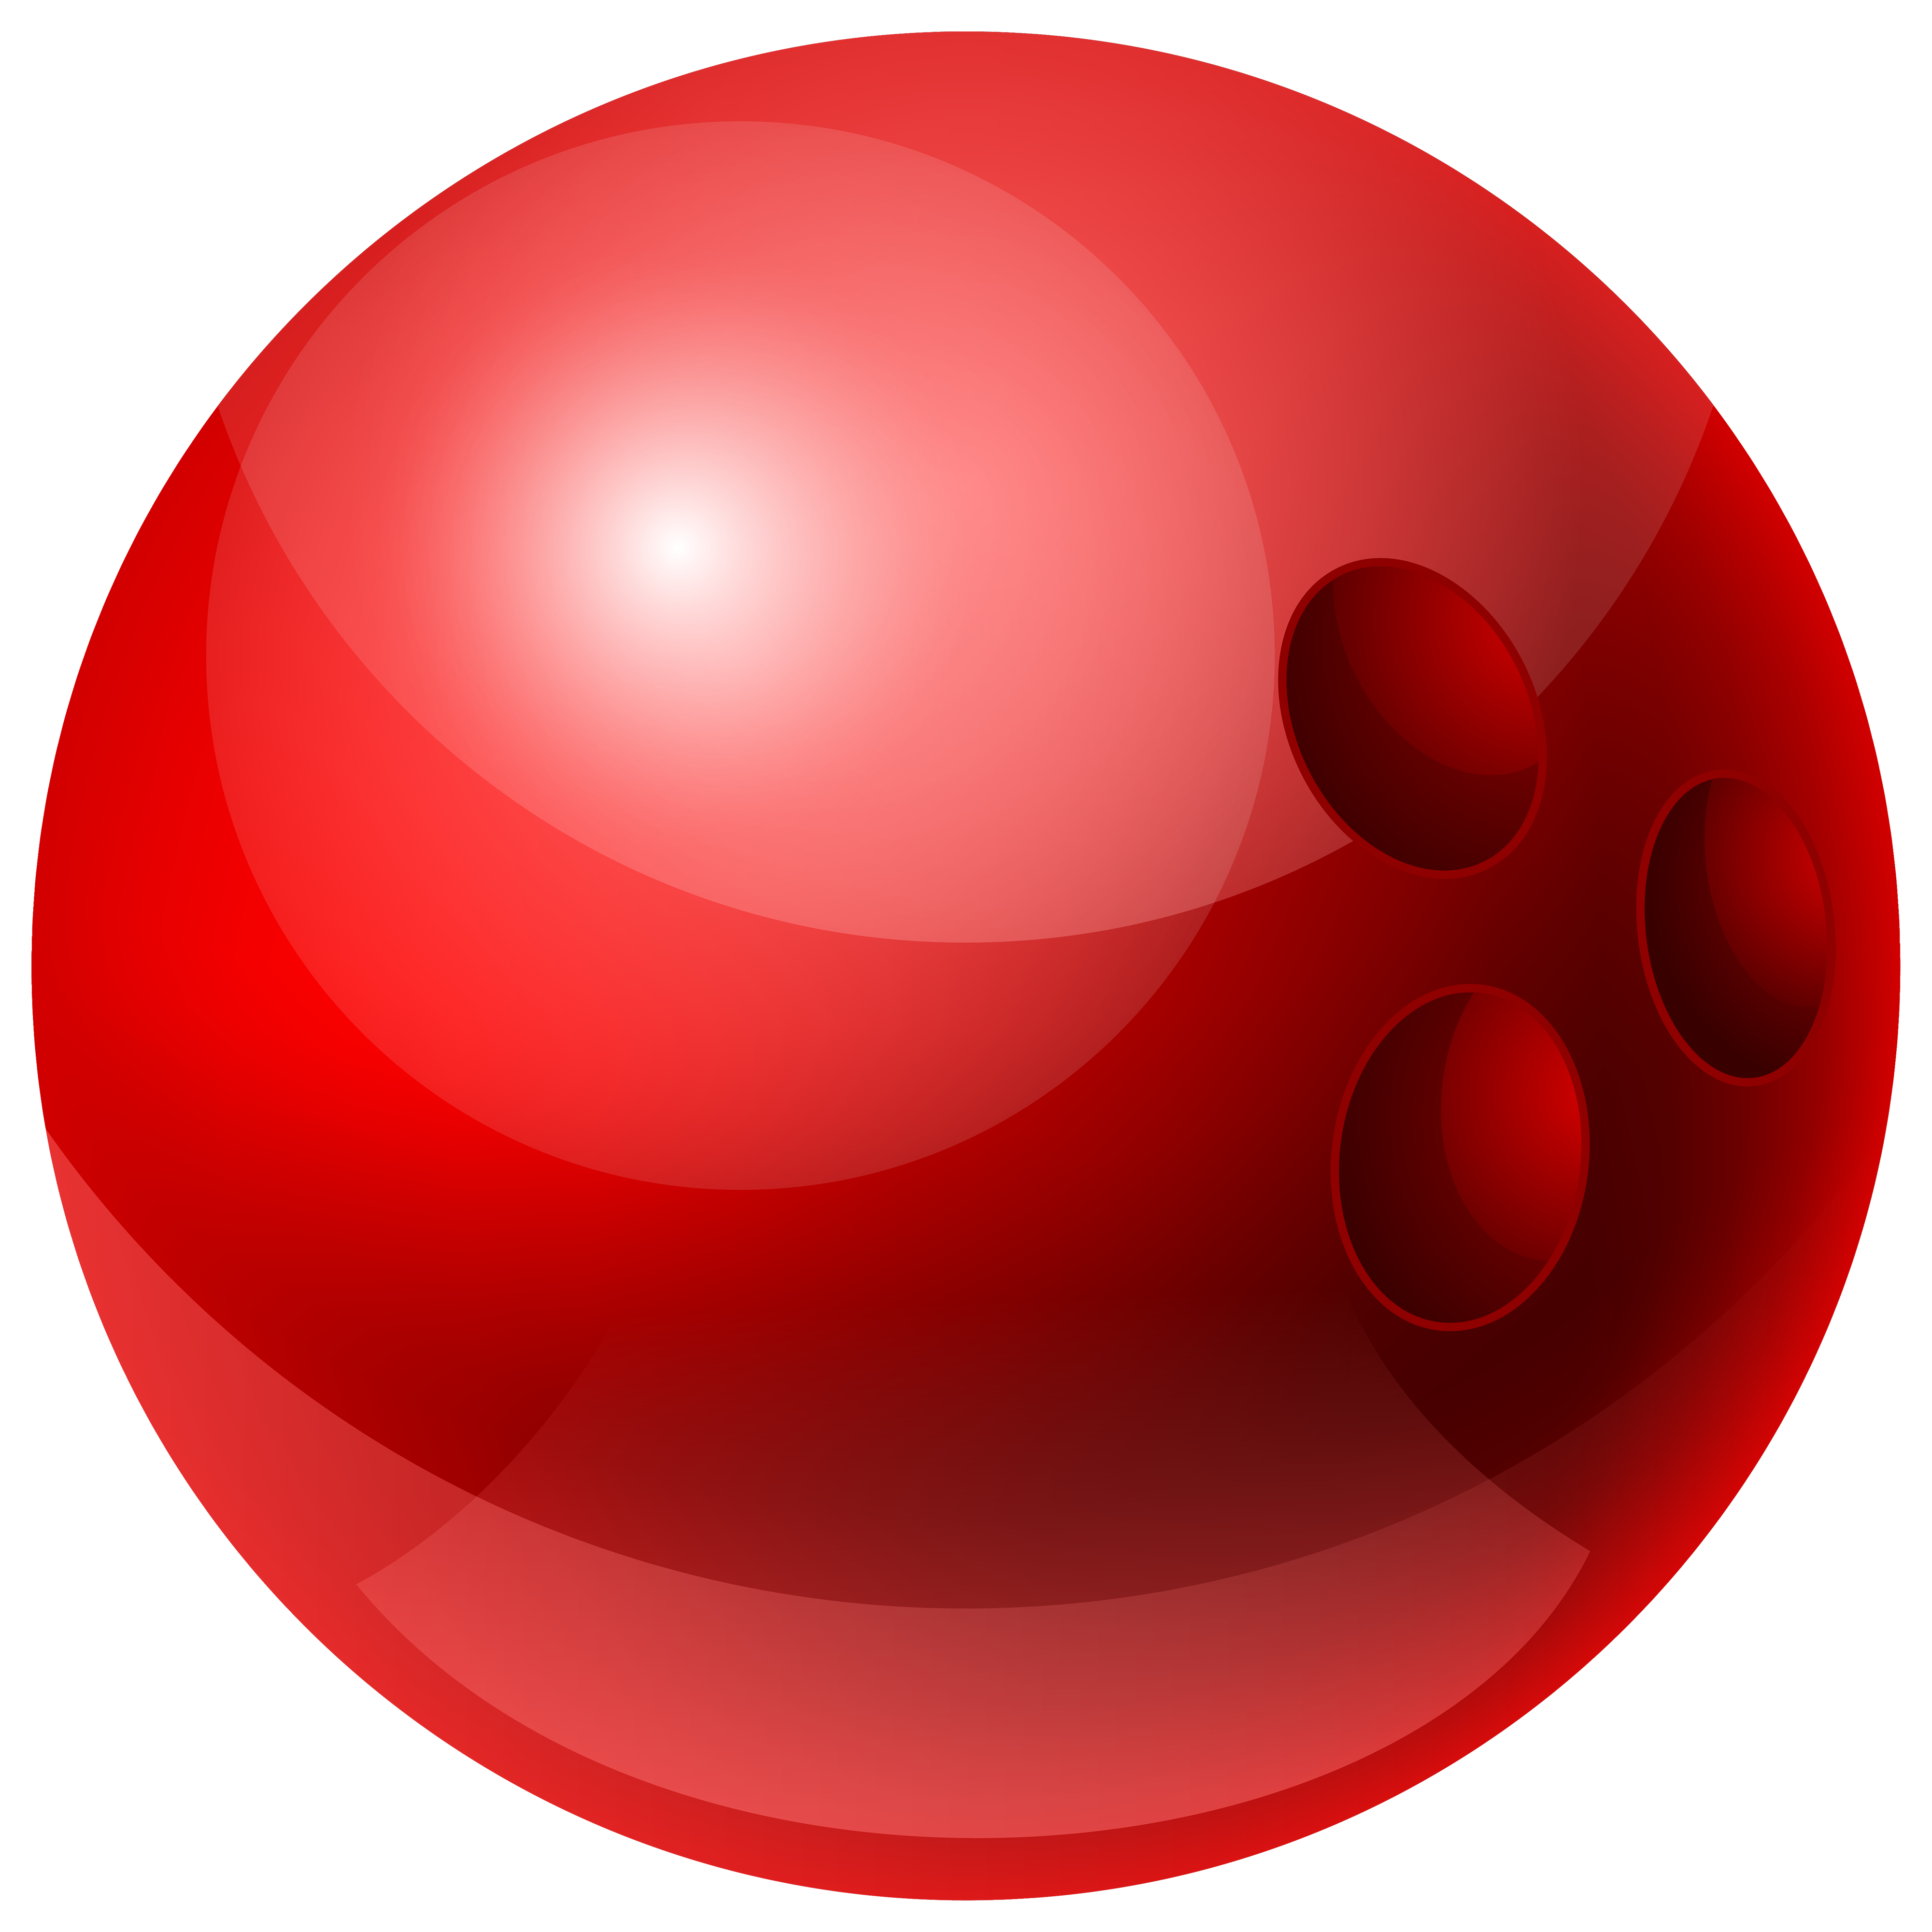 Bowling ball png. Red clipart best web